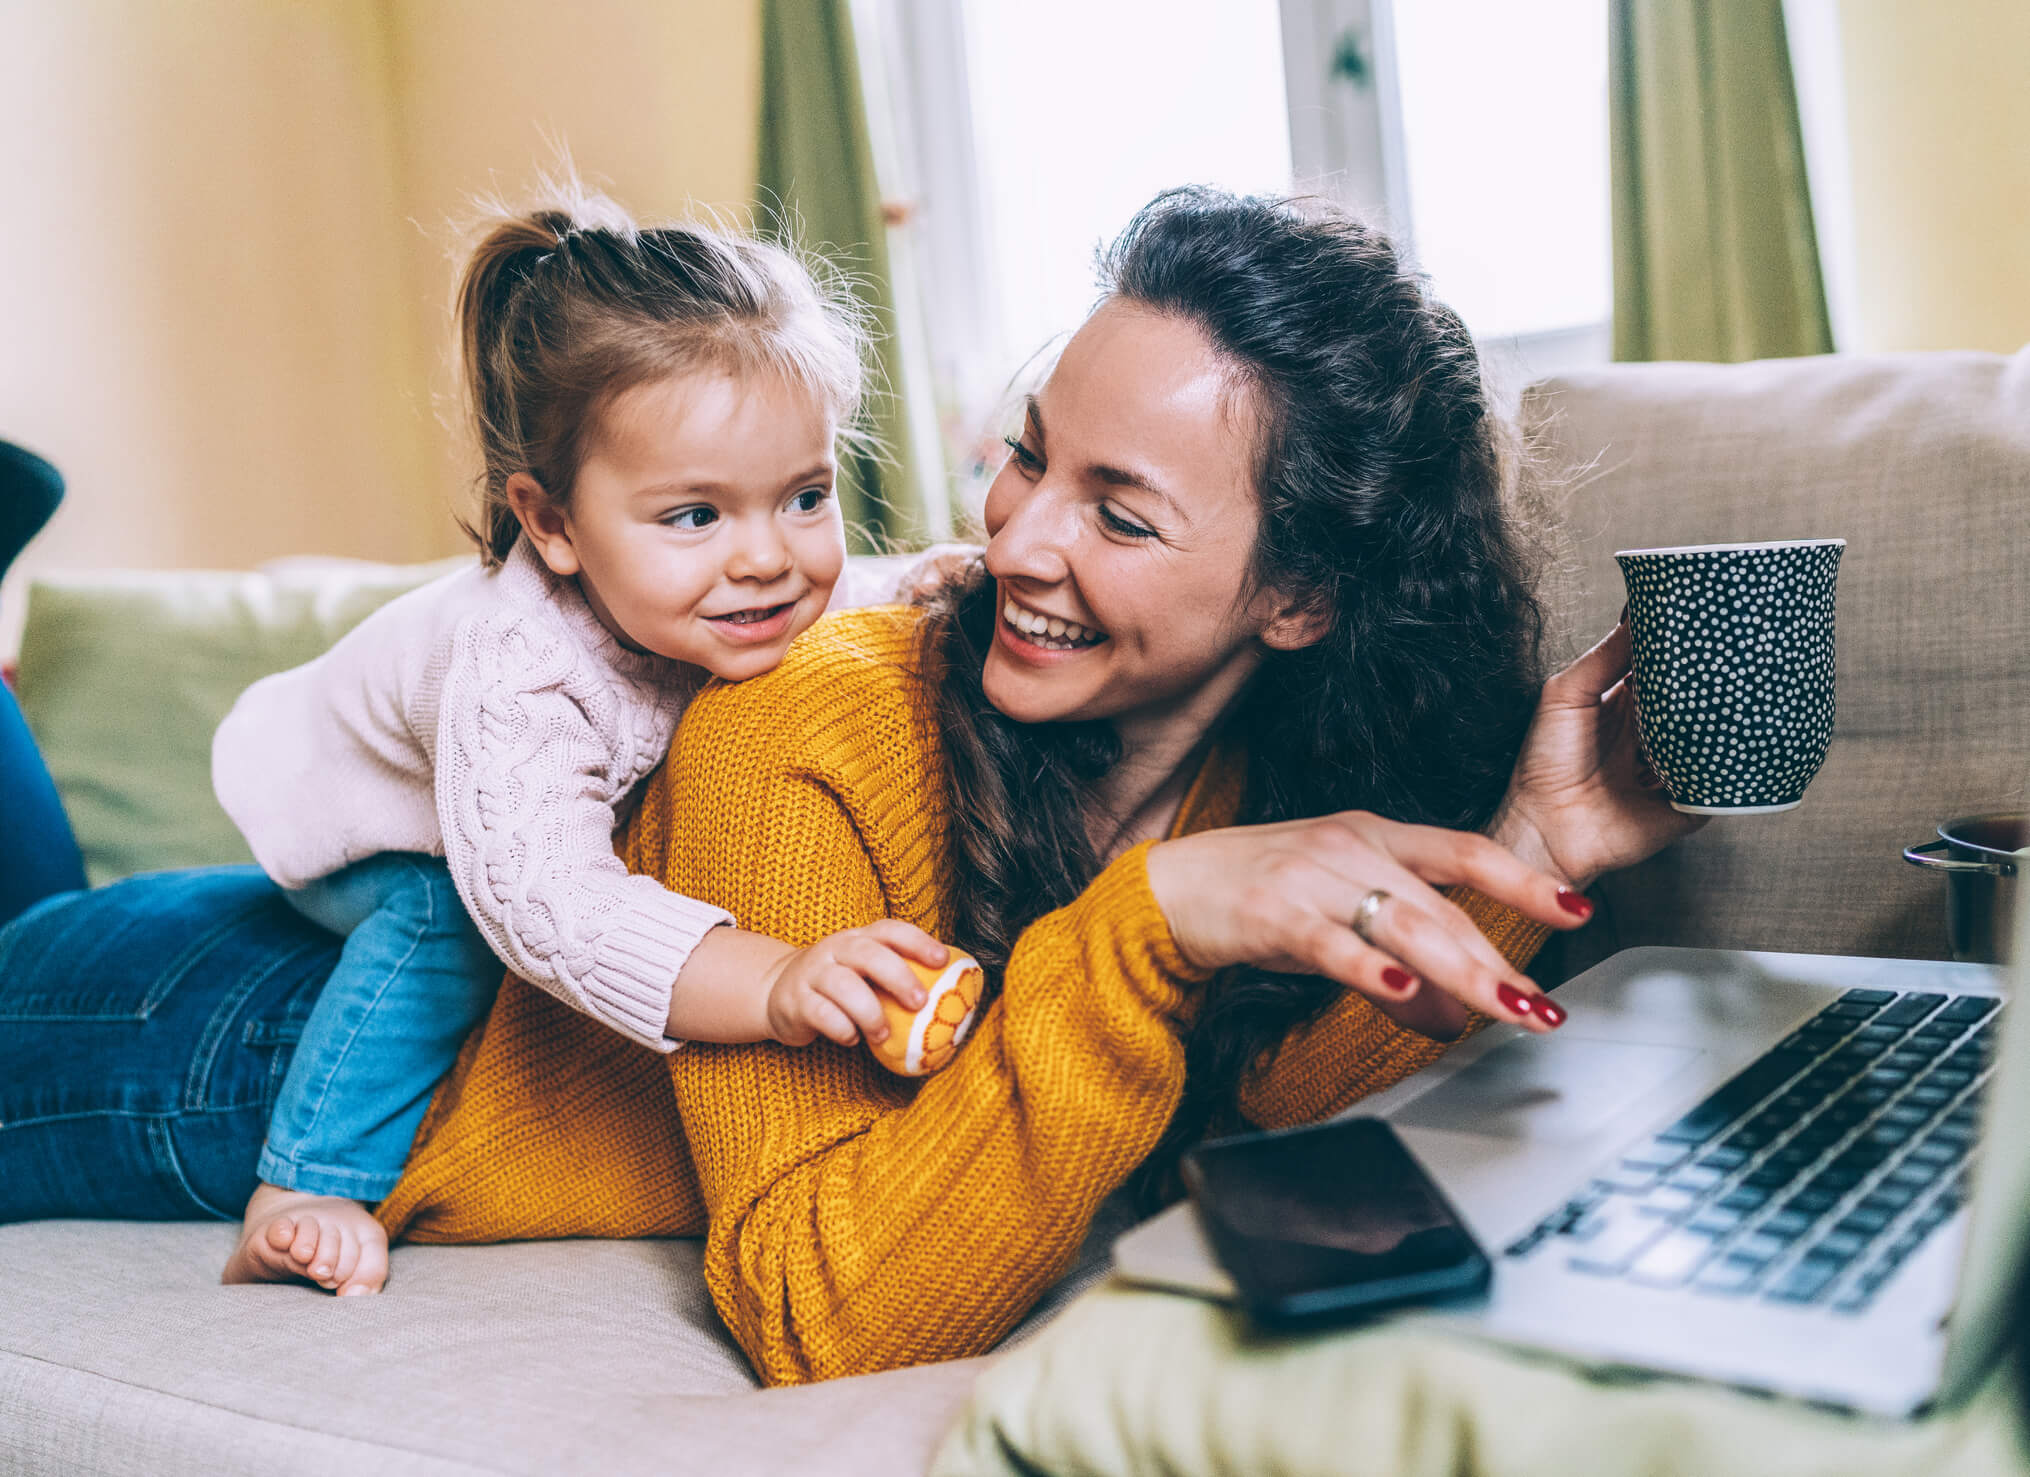 Mom and daughter laying on couch in front of laptop